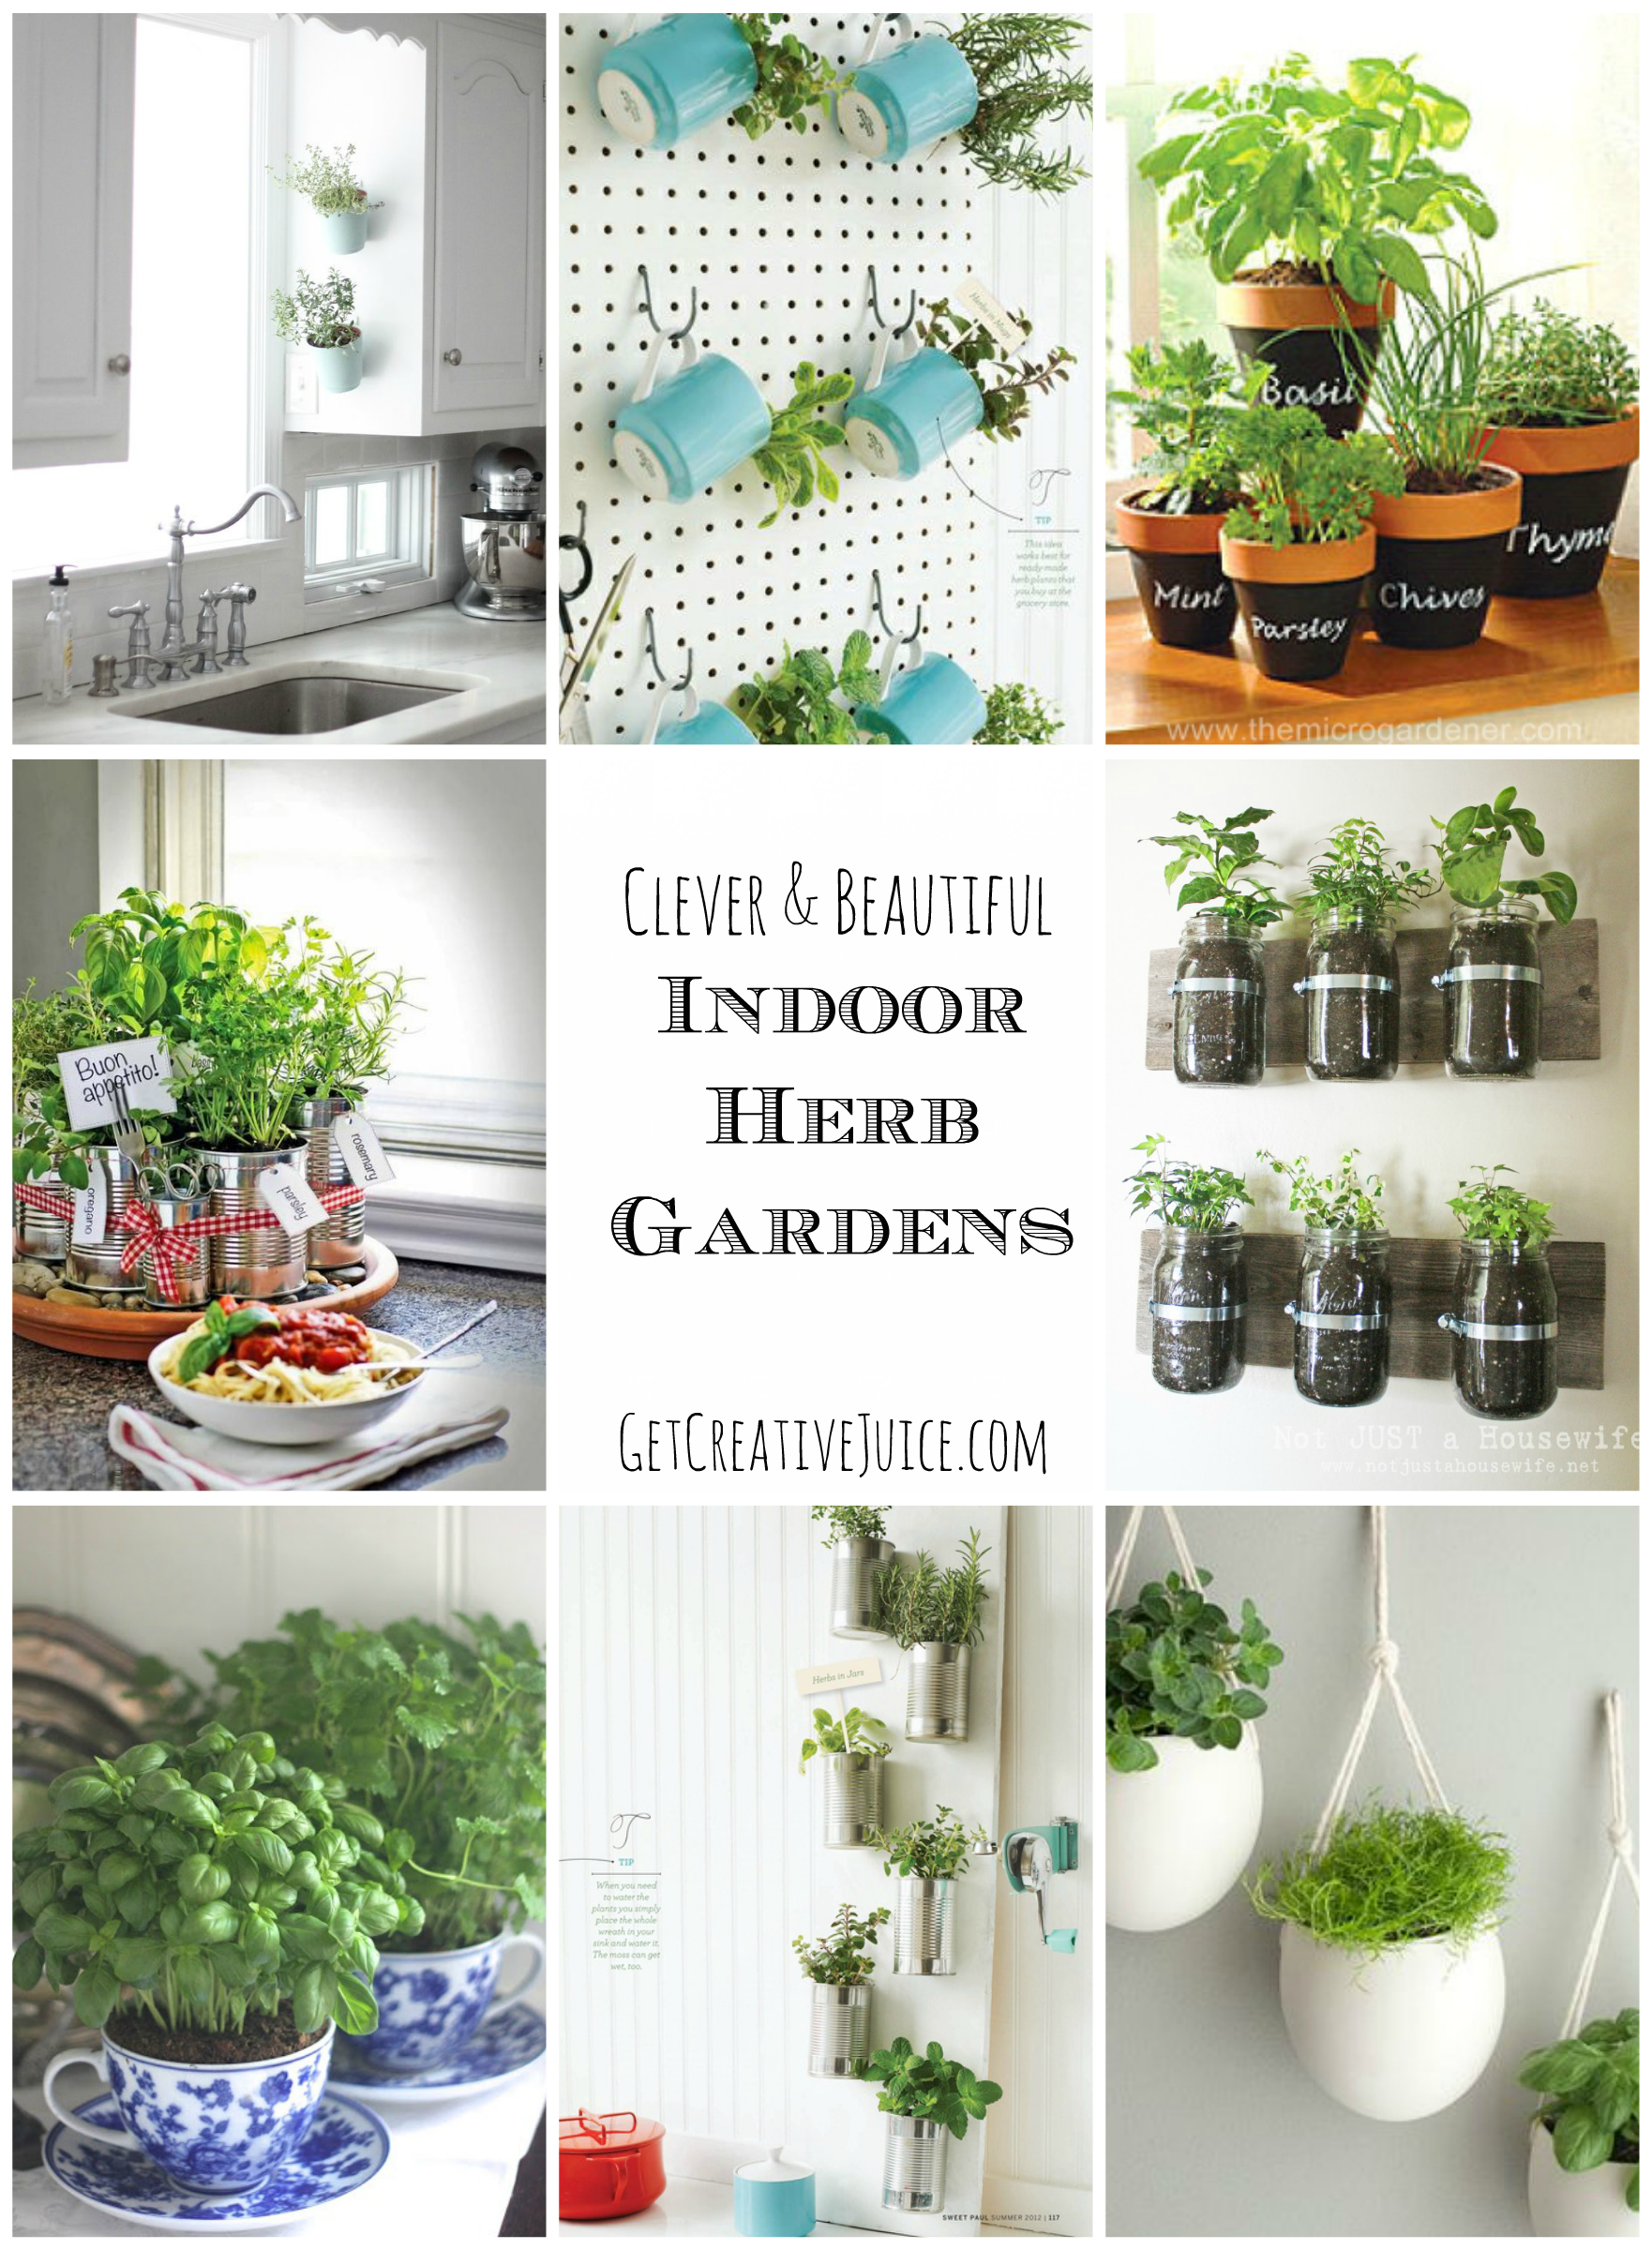 Gentil Indoor Herb Garden Ideas